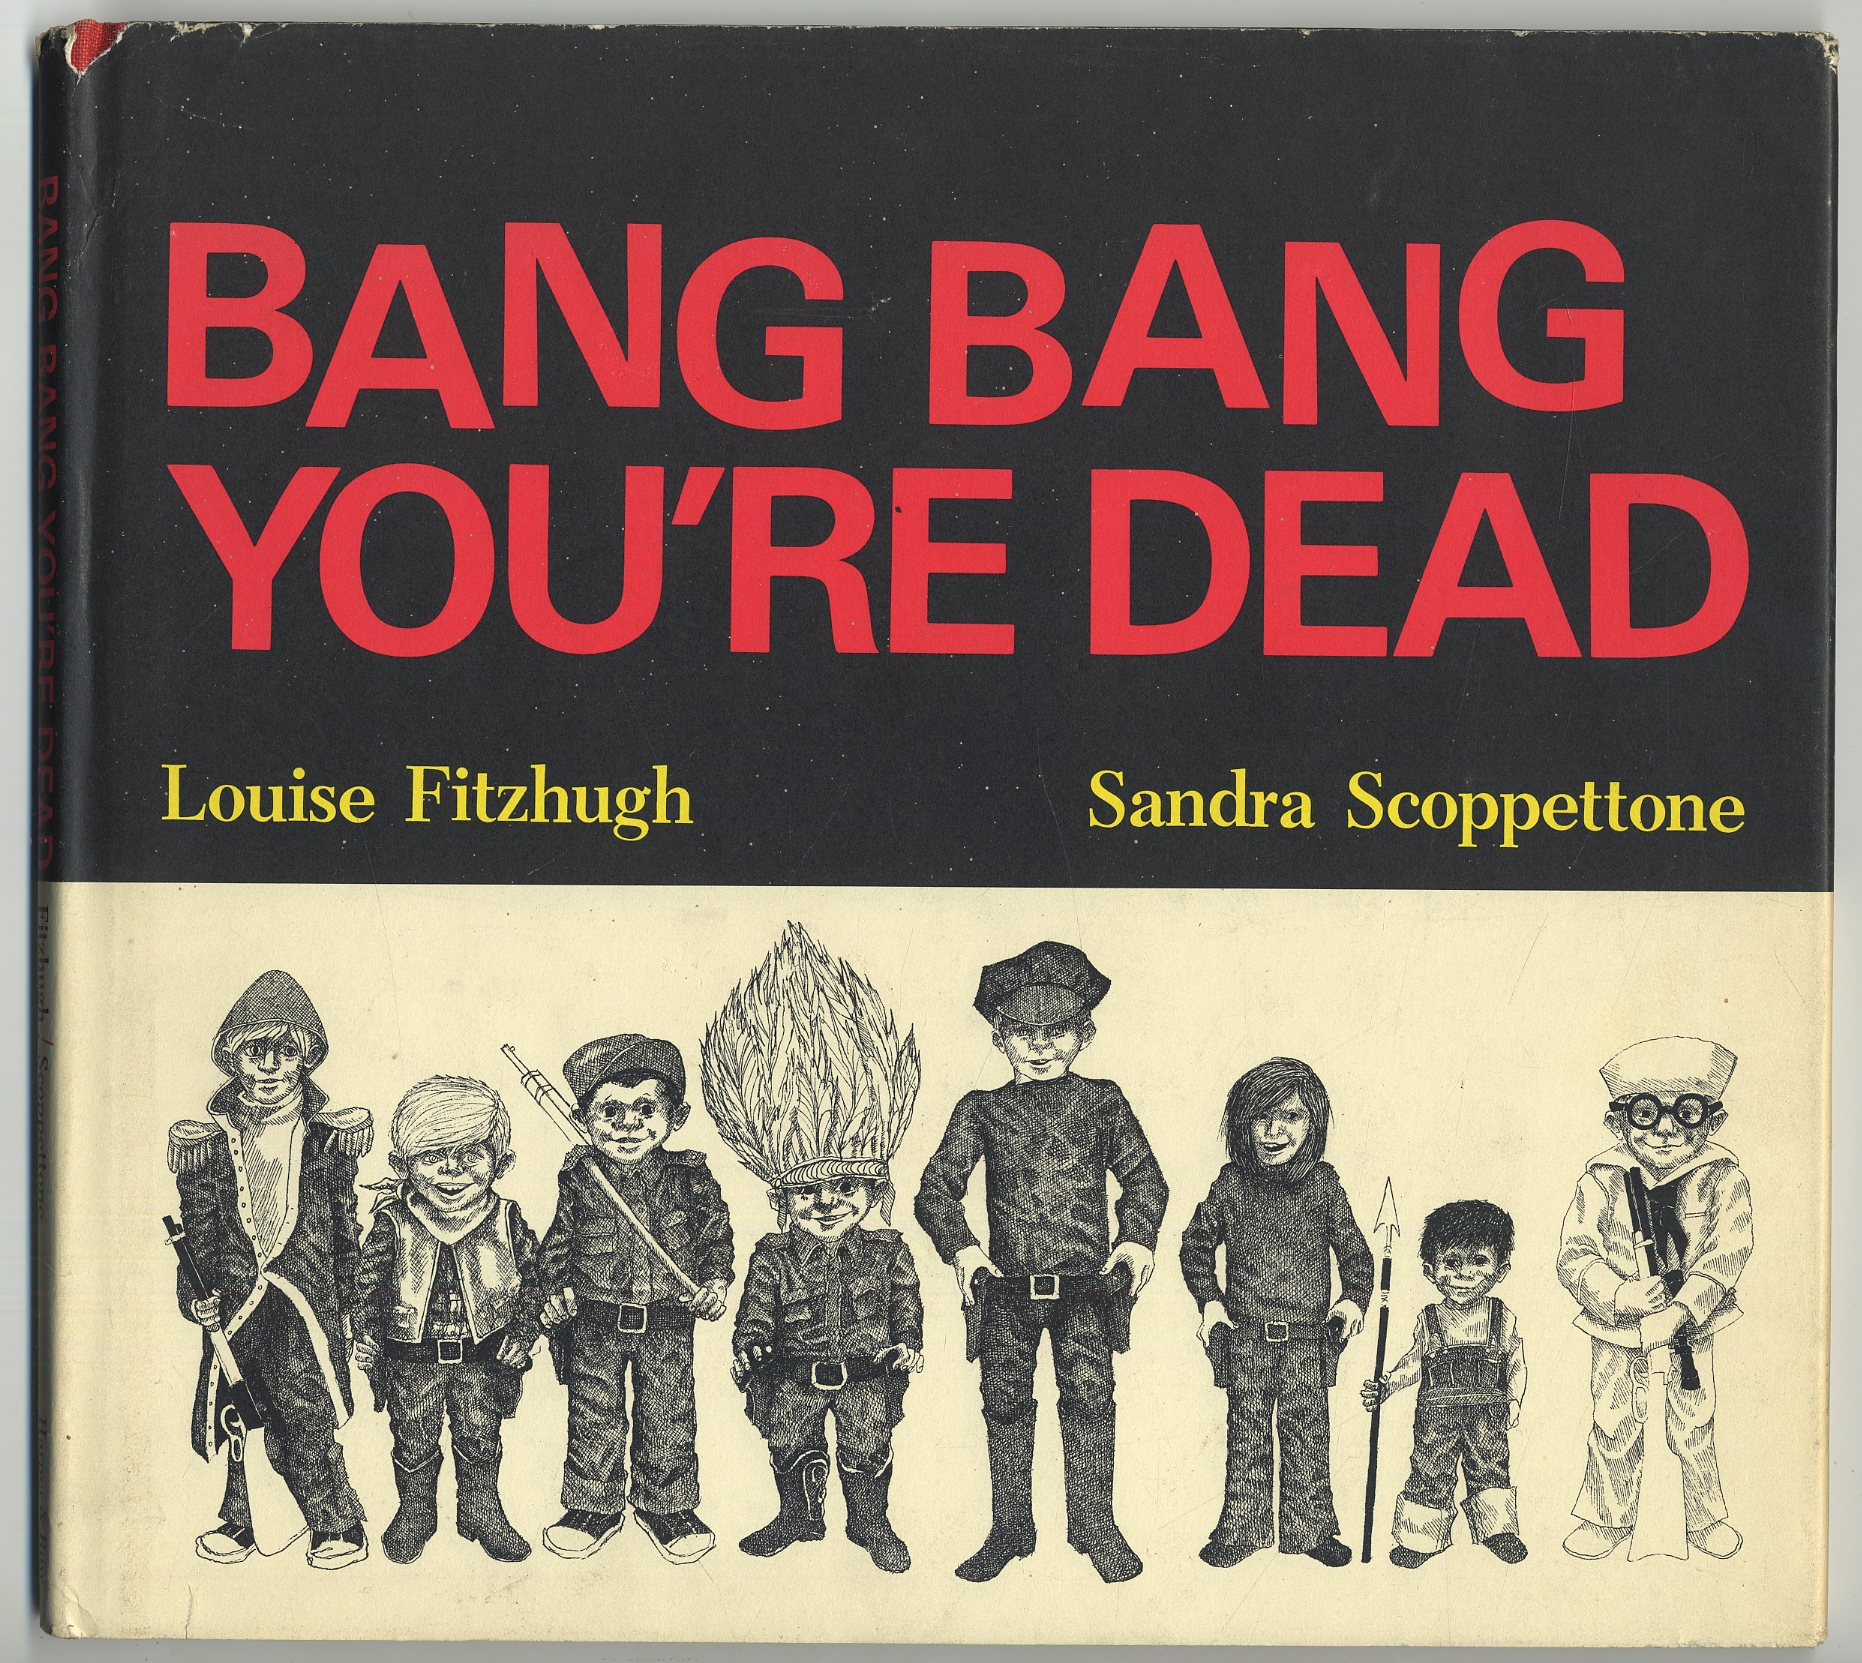 Bang Bang You're Dead SCOPPETTONE, Sandra and Louise Fitzhugh